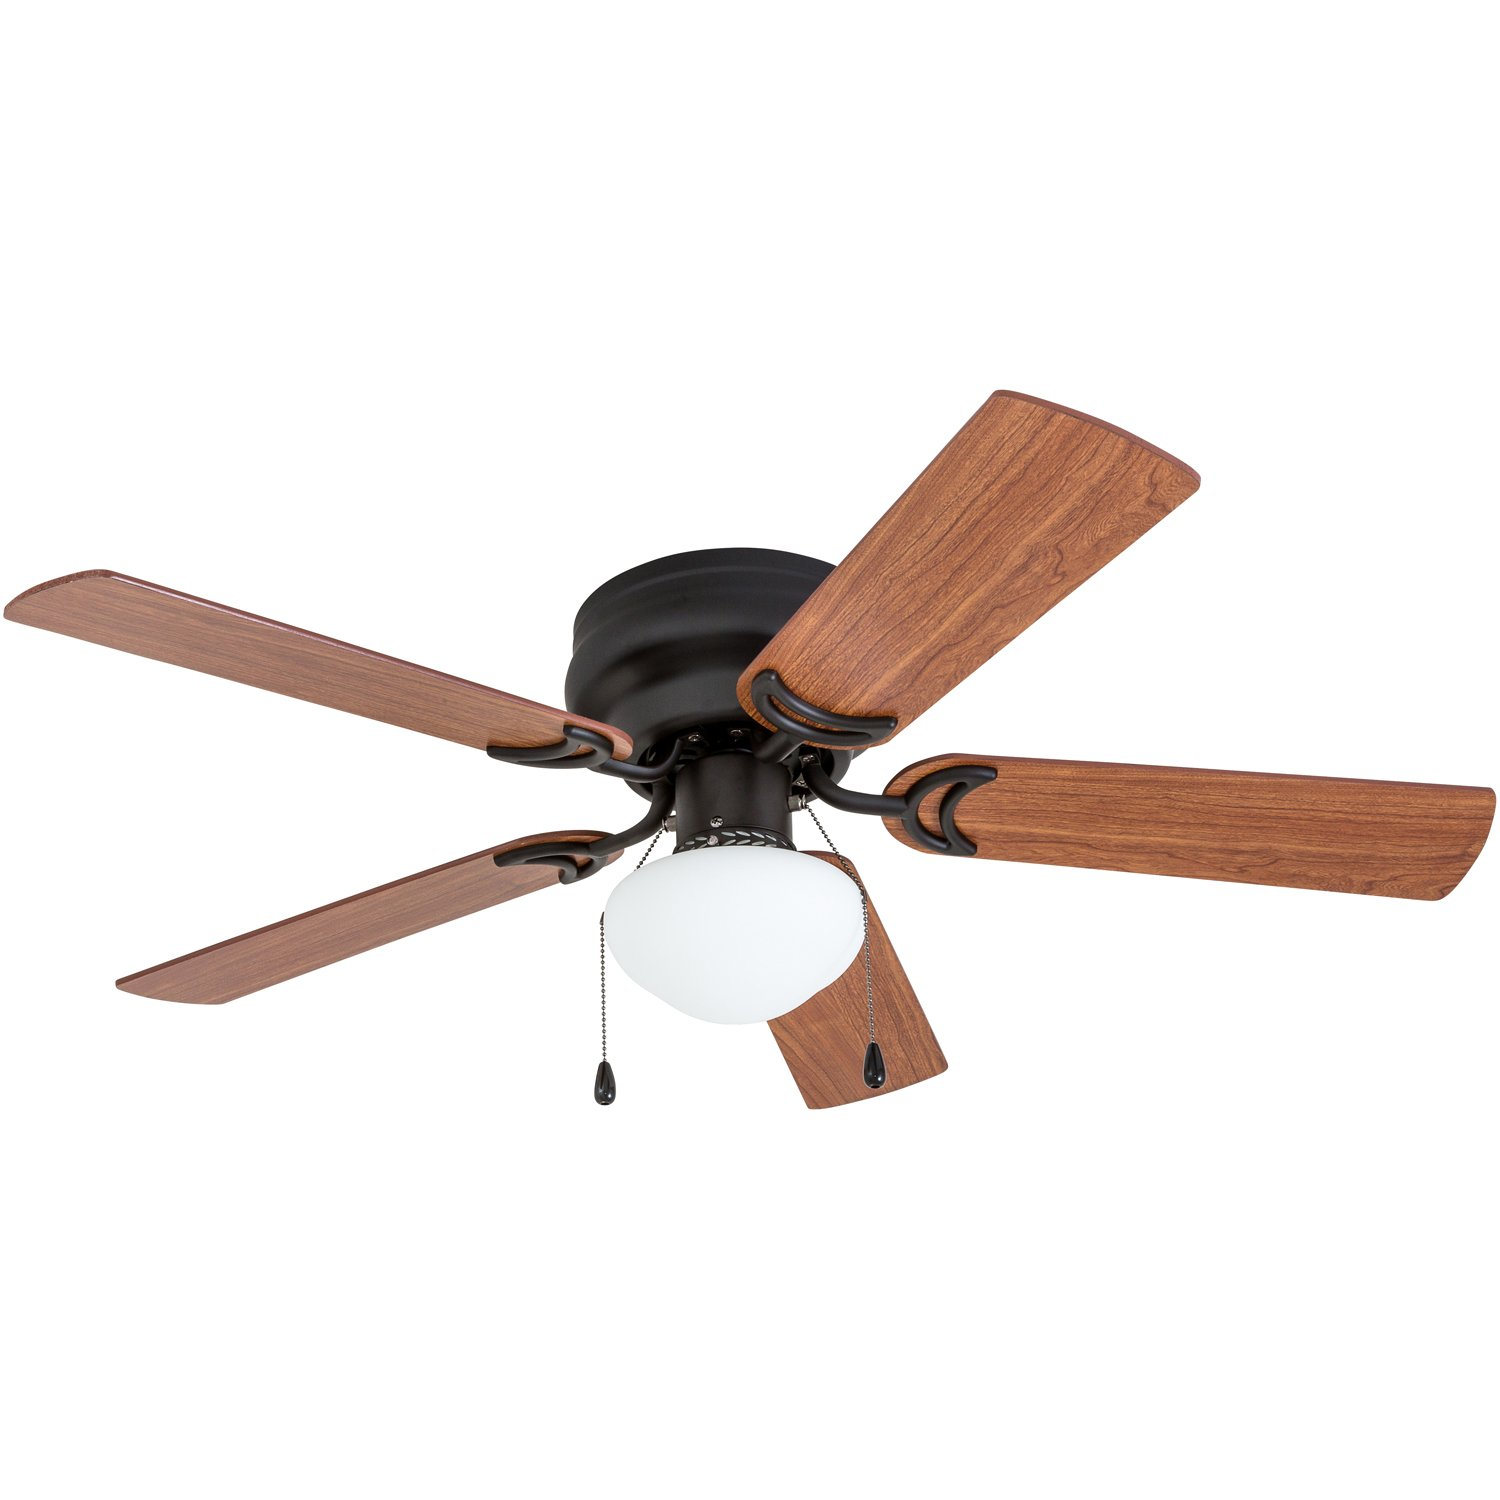 Prominence Home 50860 Alvina LED Globe Light Hugger/Low Profile Ceiling Fan, 42 inches, Bronze by Prominence Home (Image #5)